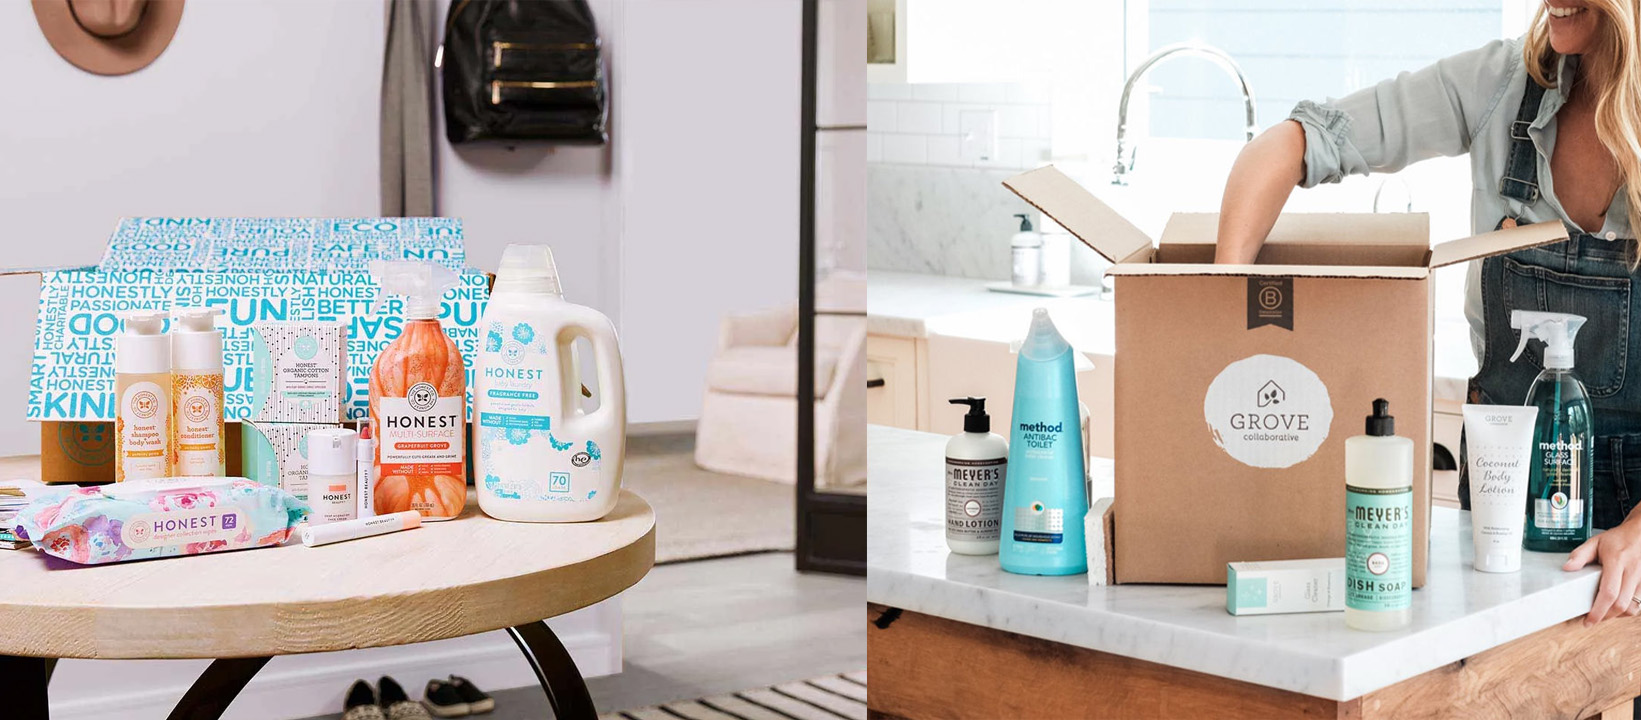 The five best home subscription boxes for spring cleaning with prices from $3